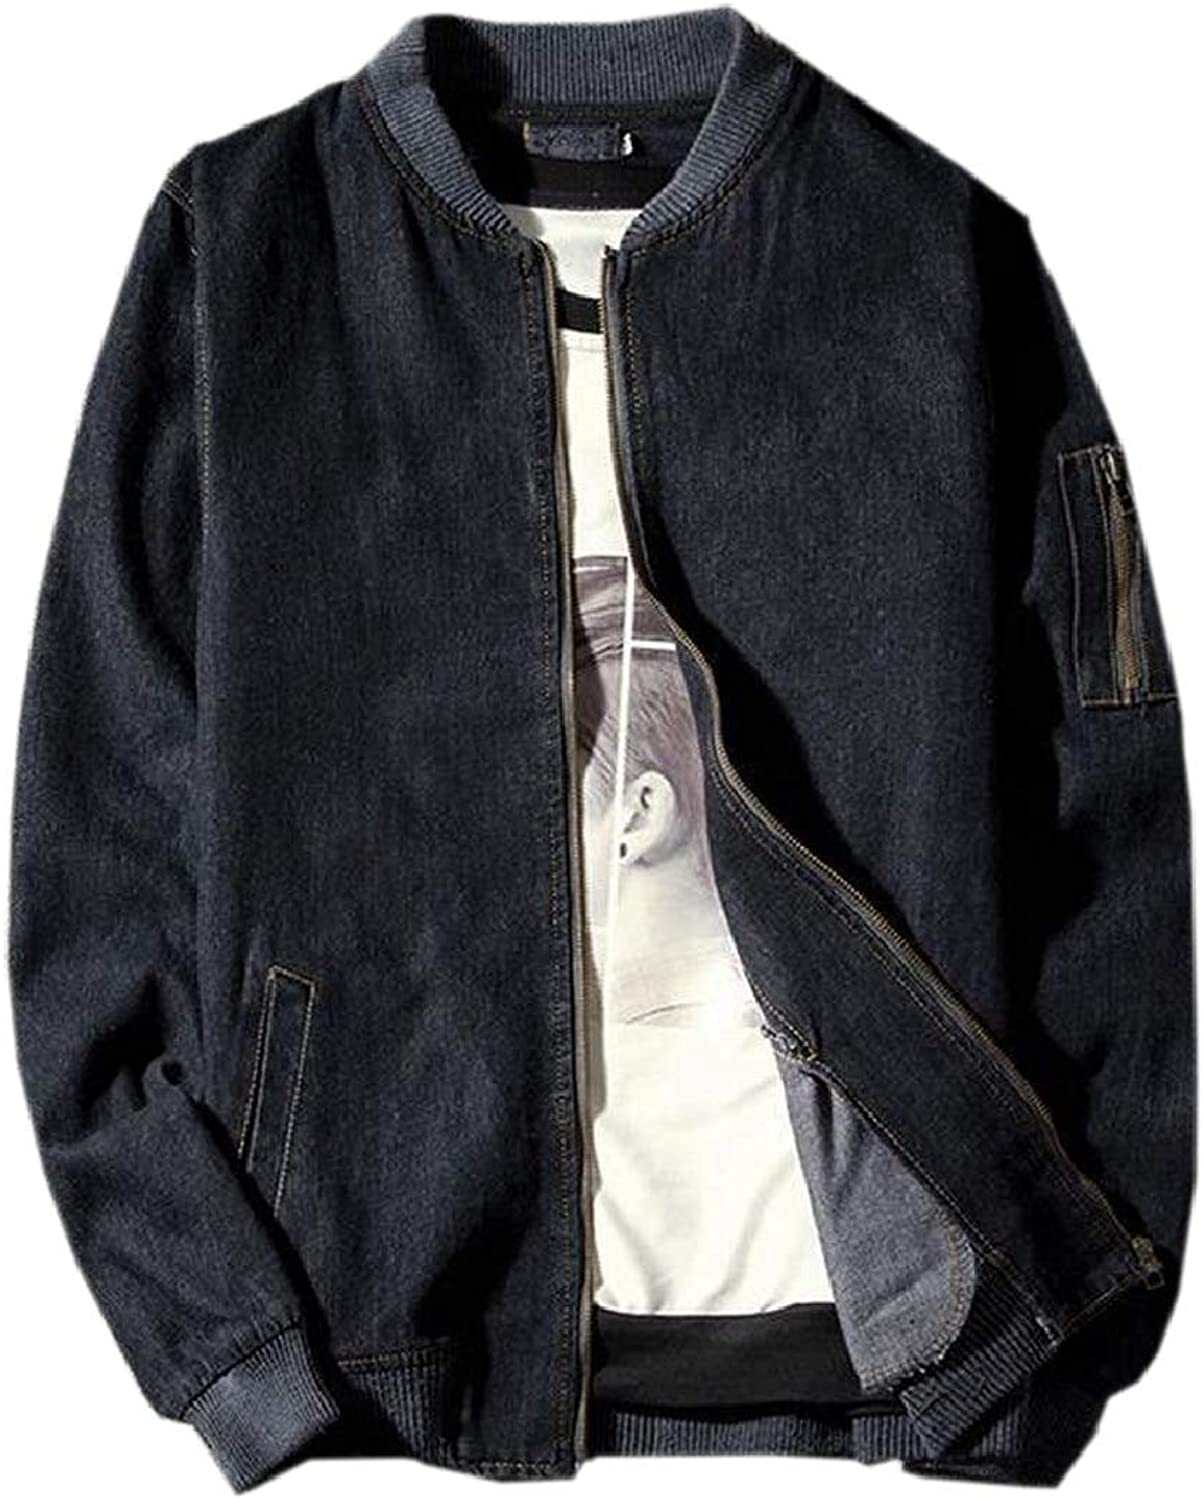 - pujingge-CA Men Washed Stylish Stand Stand Stand Collar Zip Front Denim Jacket Coat Outerwear bf7958